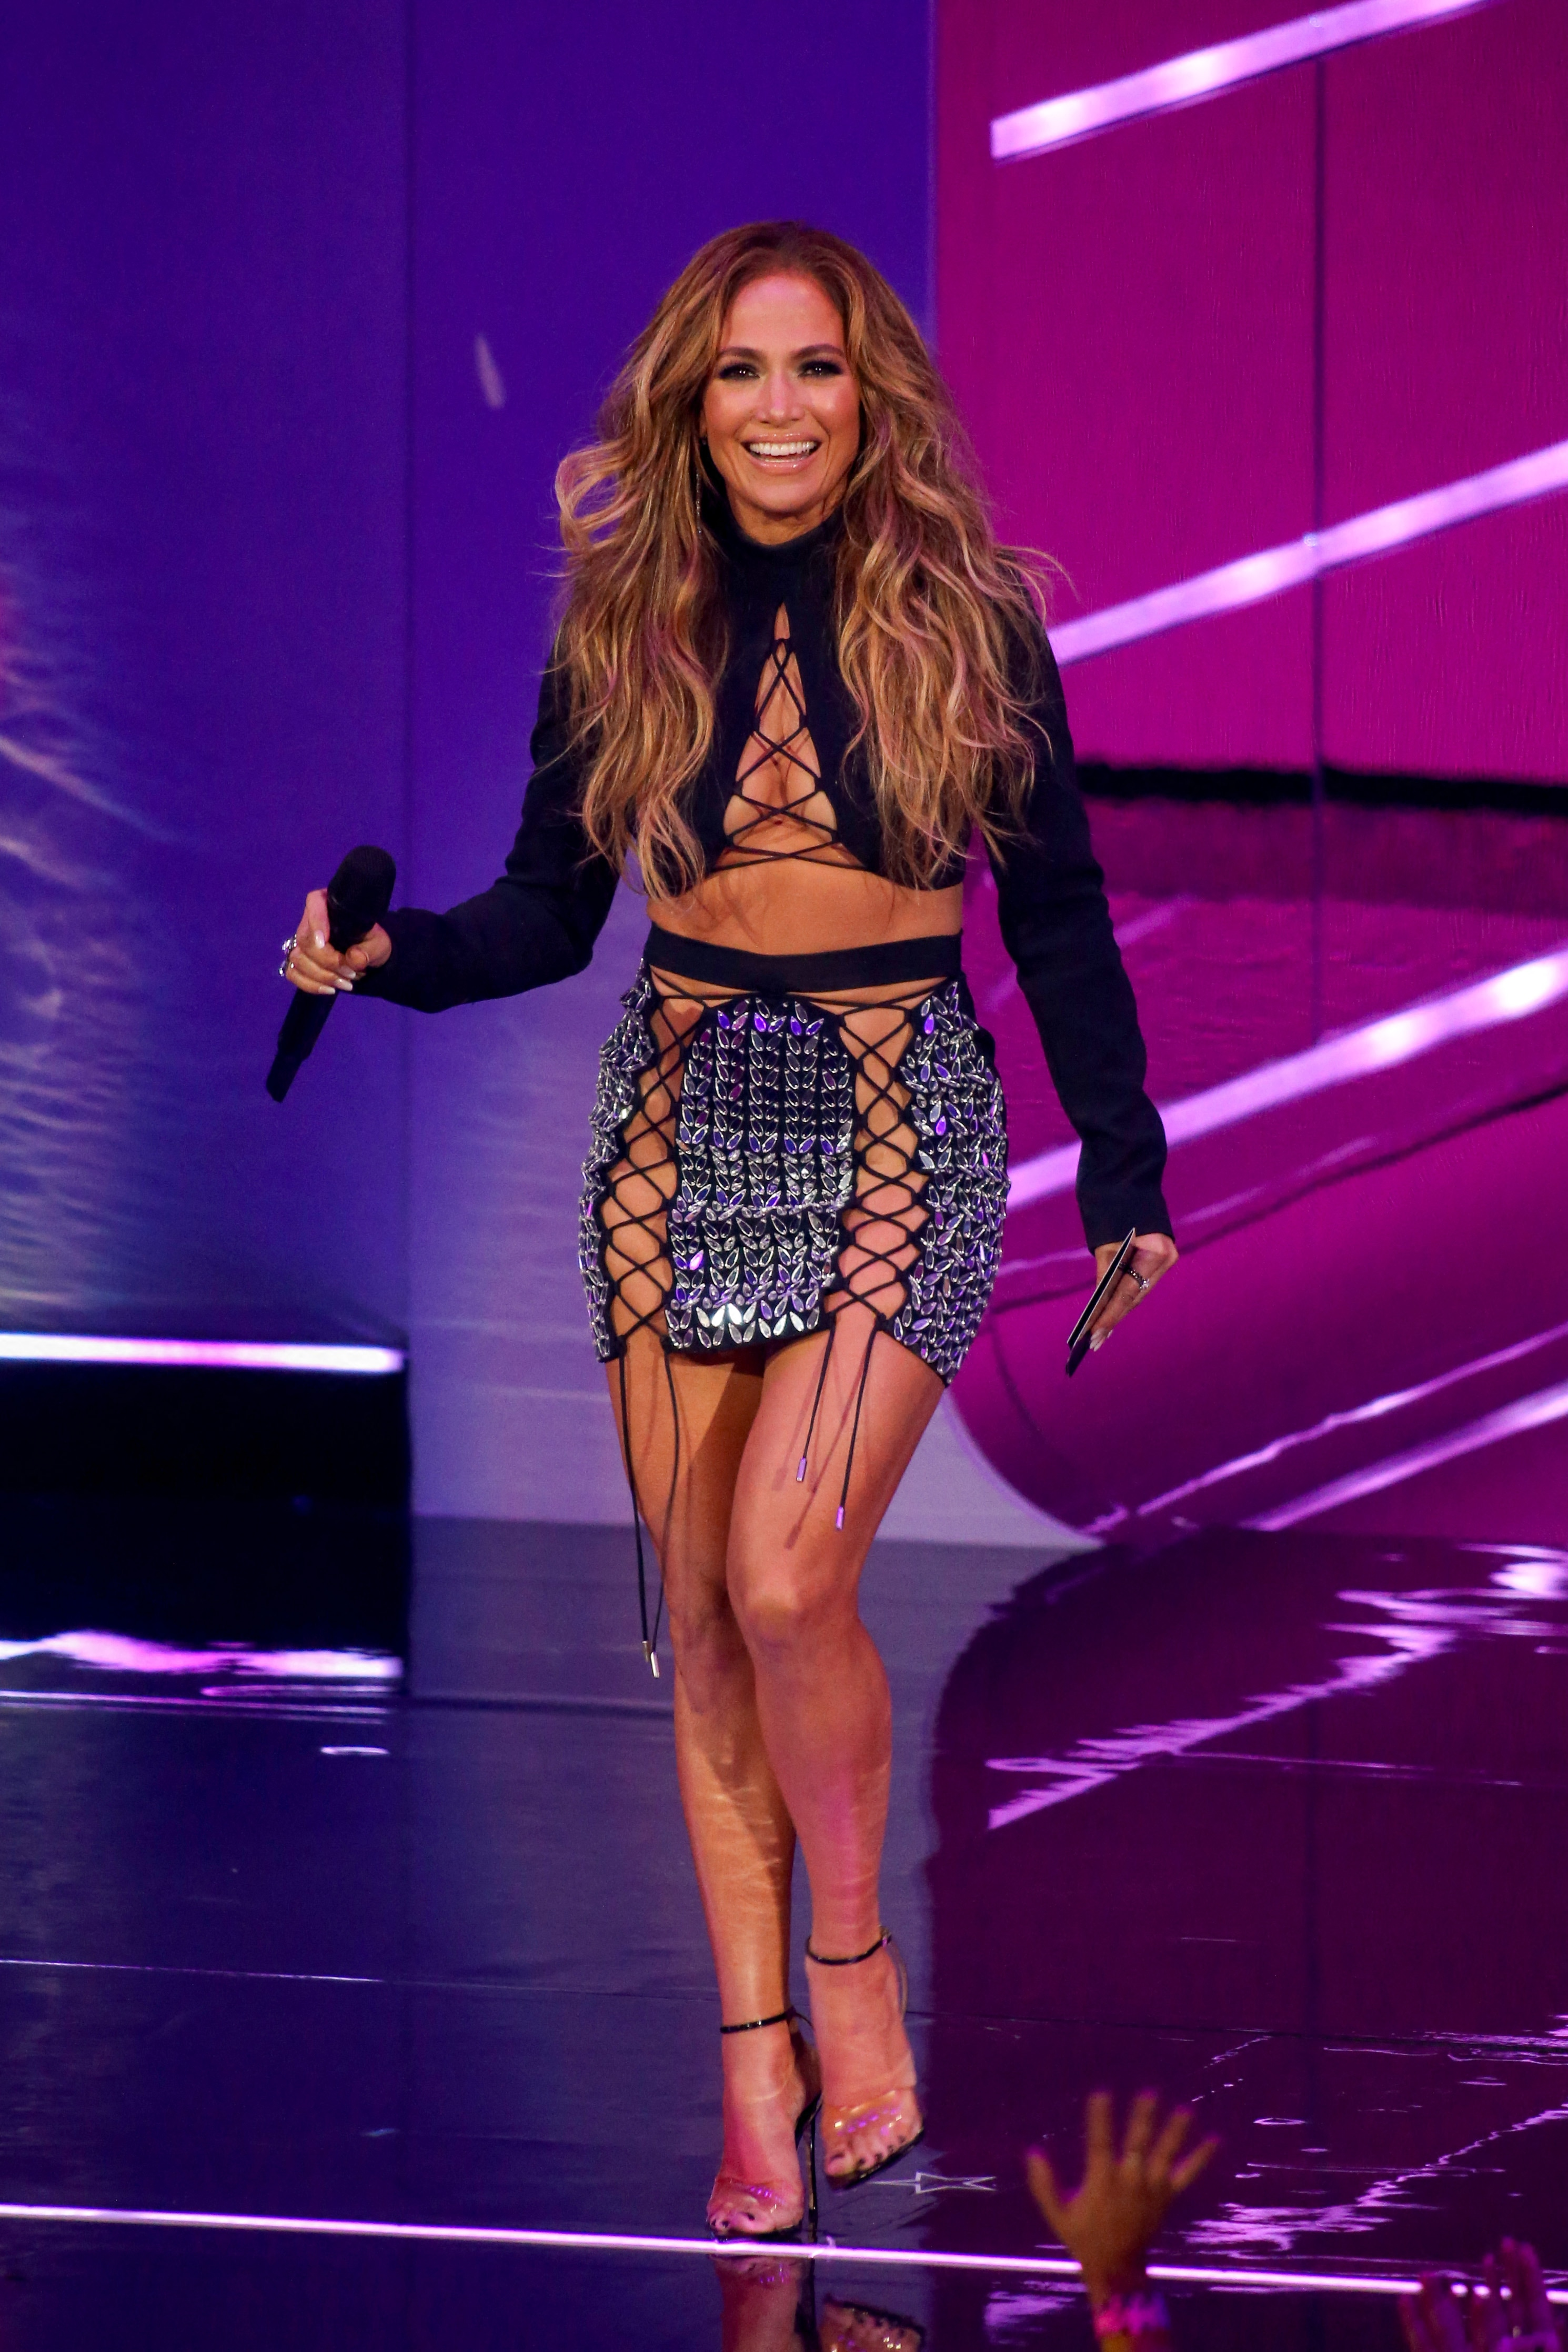 MTV Video Music Awards 2021: After Red Carpet Debut With Ben Affleck, Jennifer Lopez Sizzles In A Tie-Up Crop Top And Mini Skirt